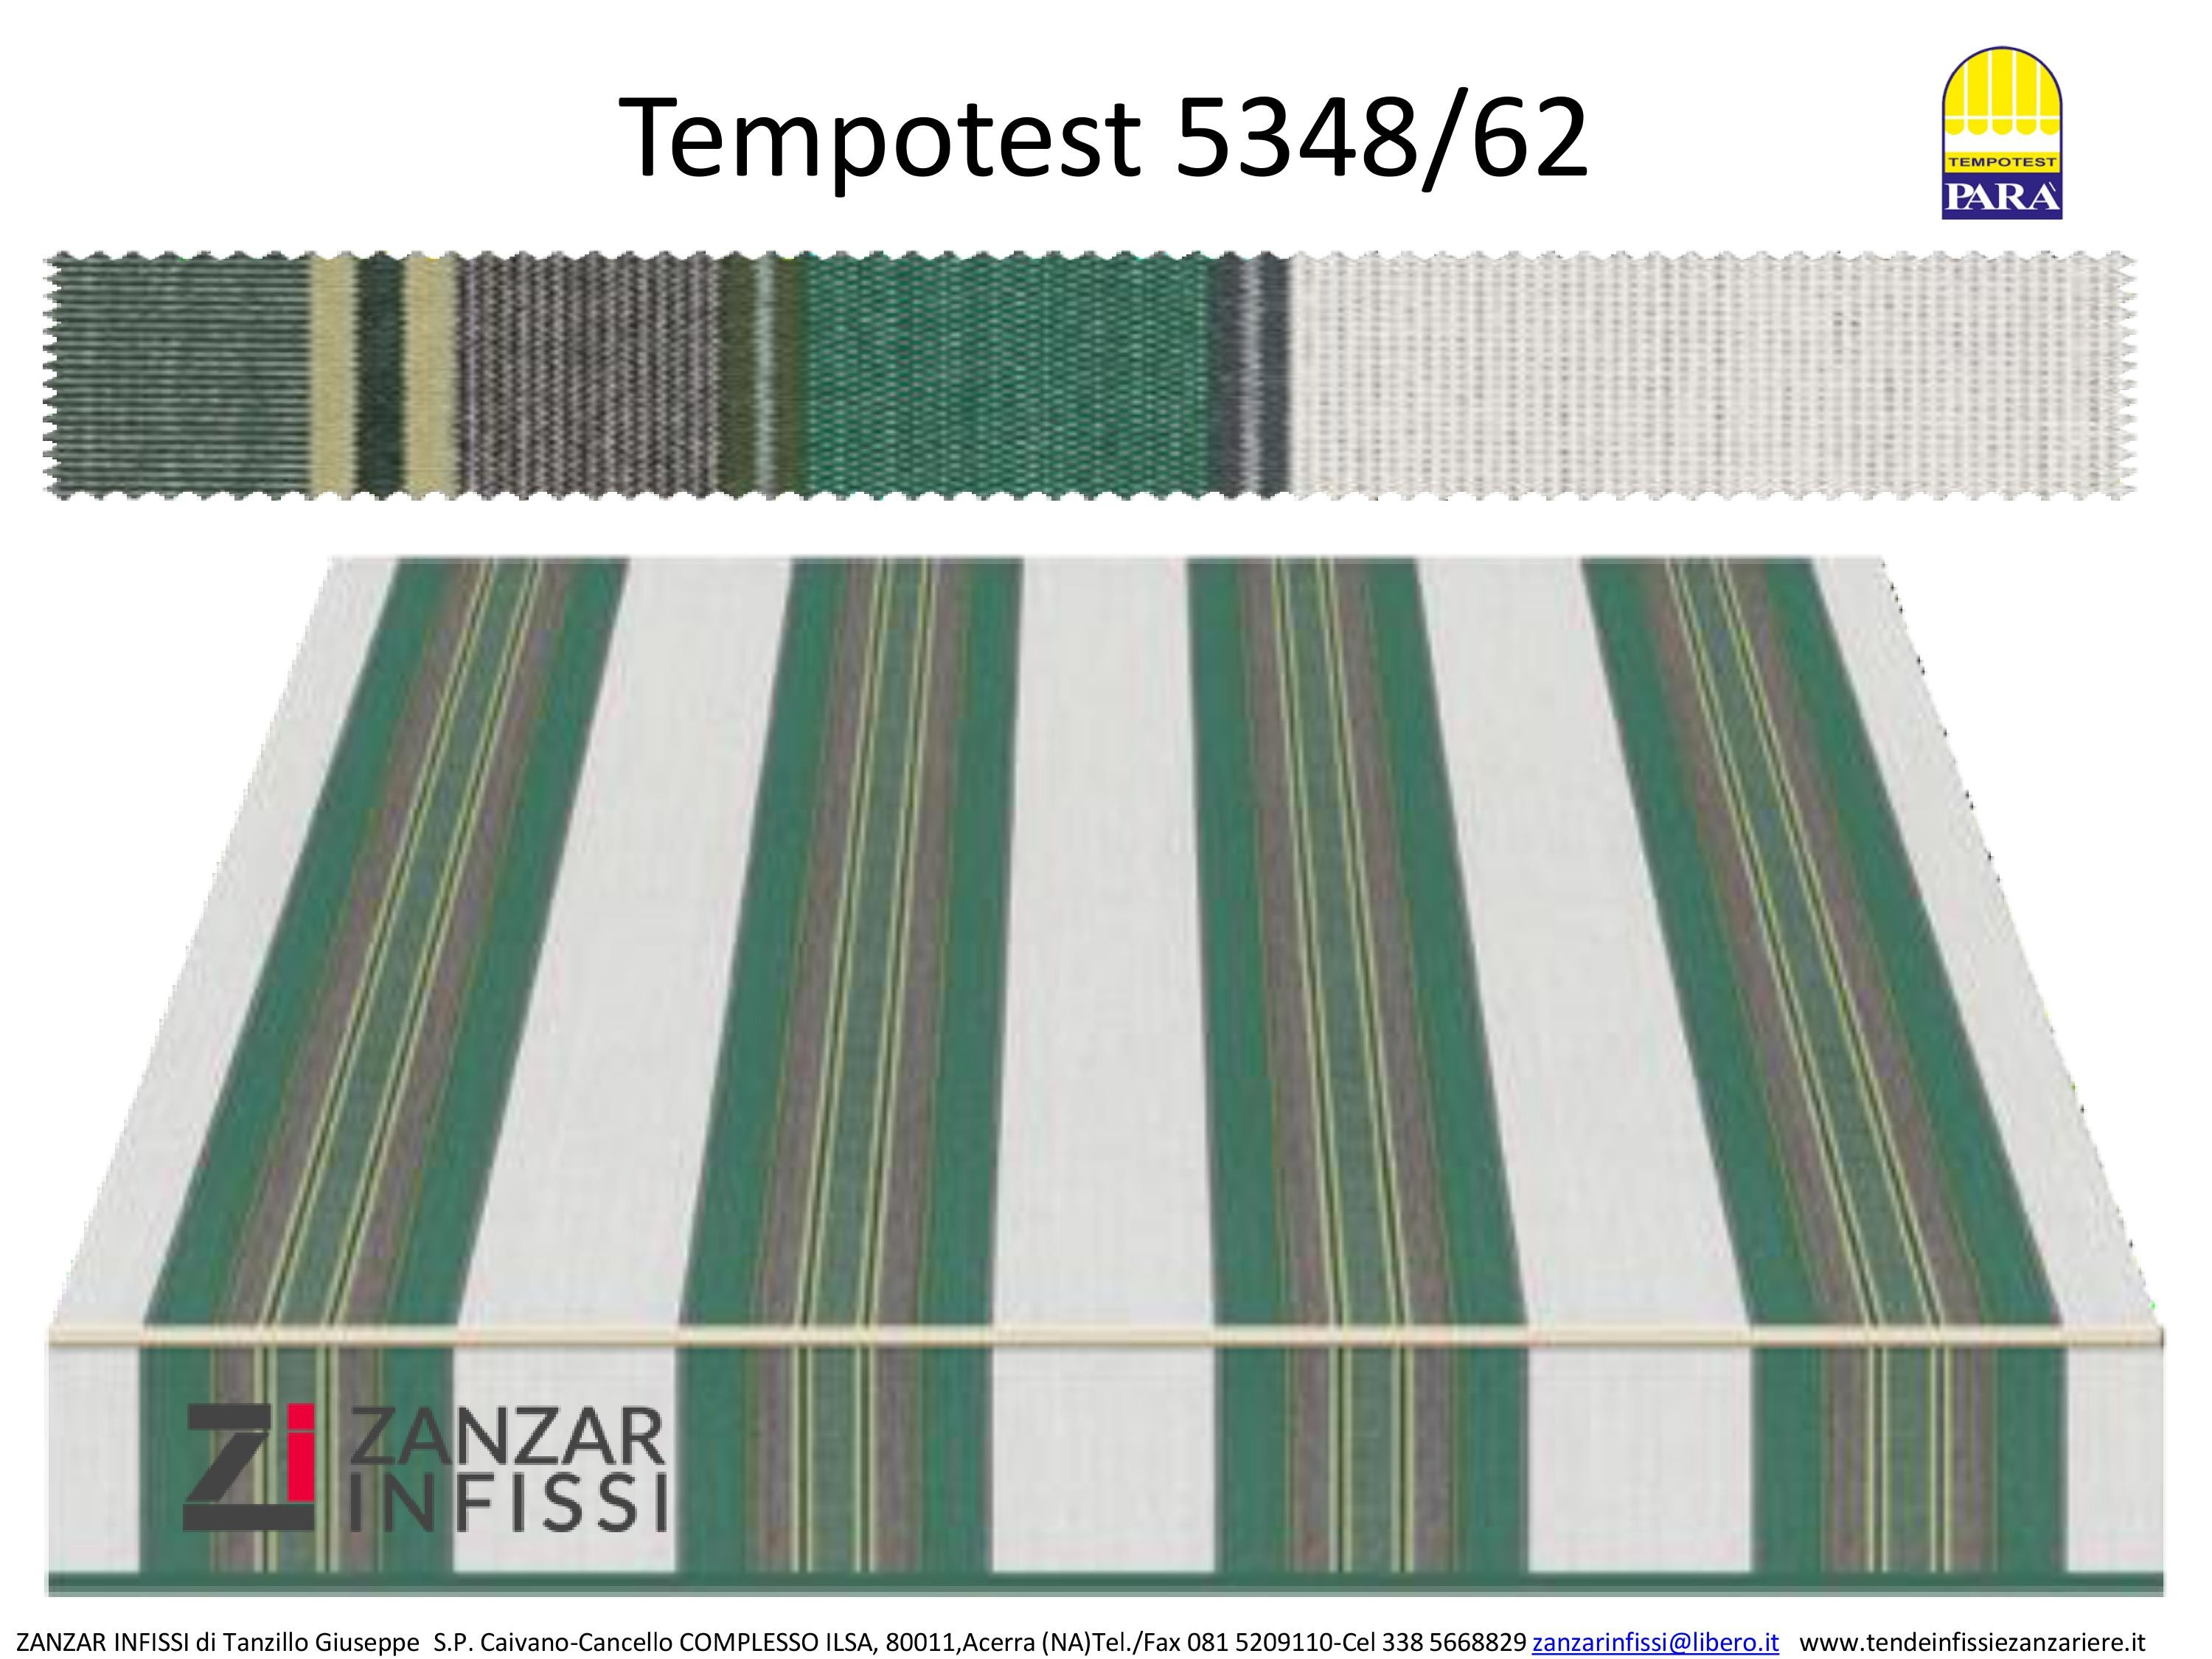 Tempotest 5348/62